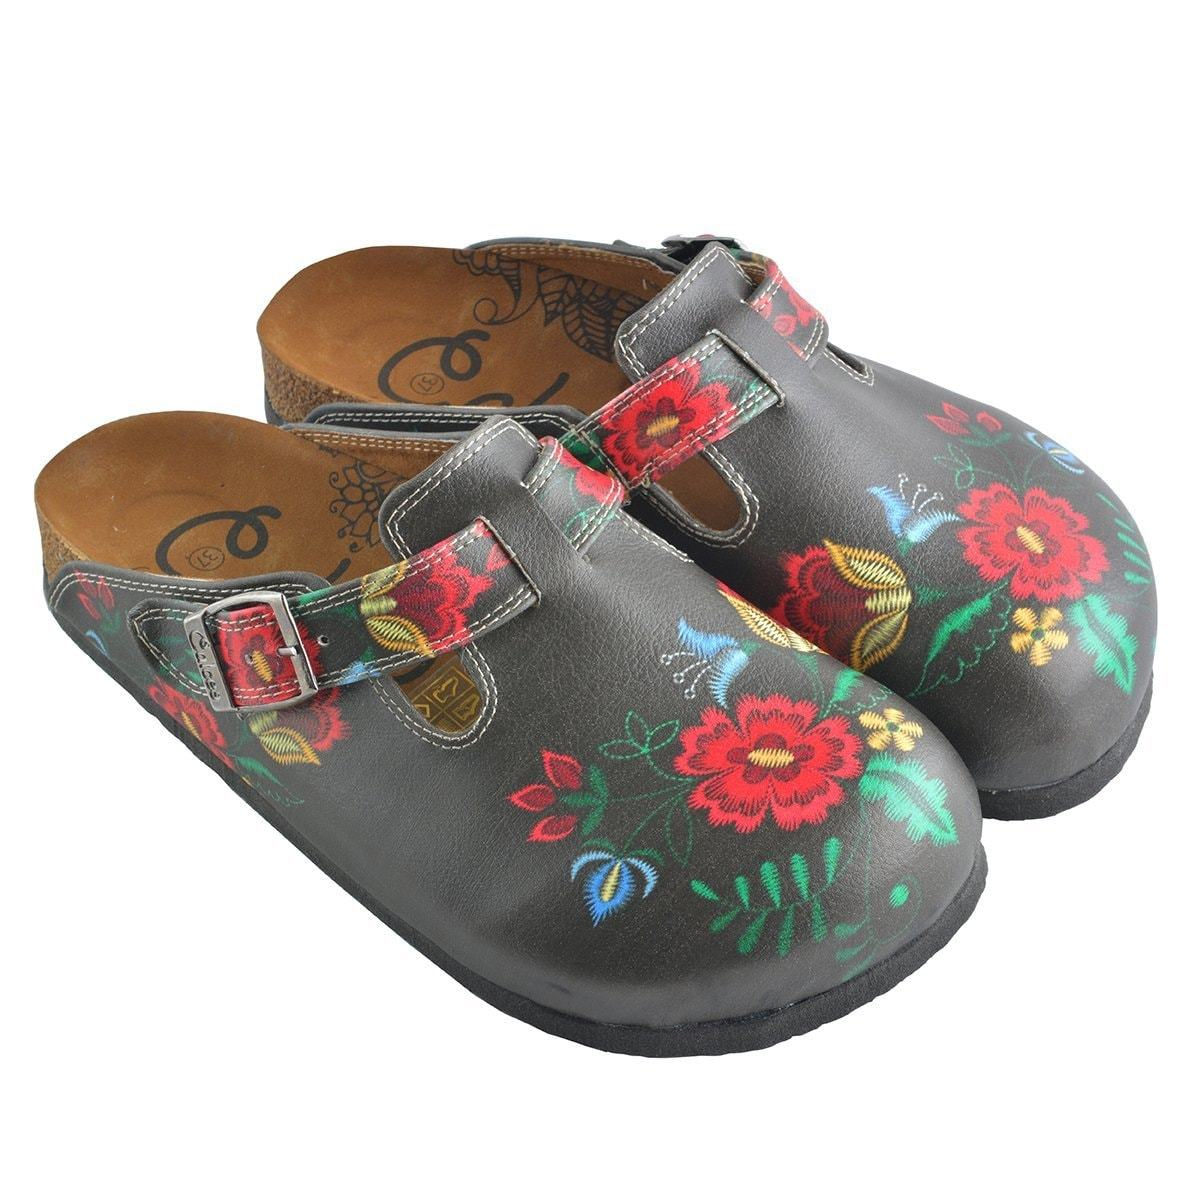 Red, Grey, Yellow Colored Flowers Patterned Clogs - WCAL355